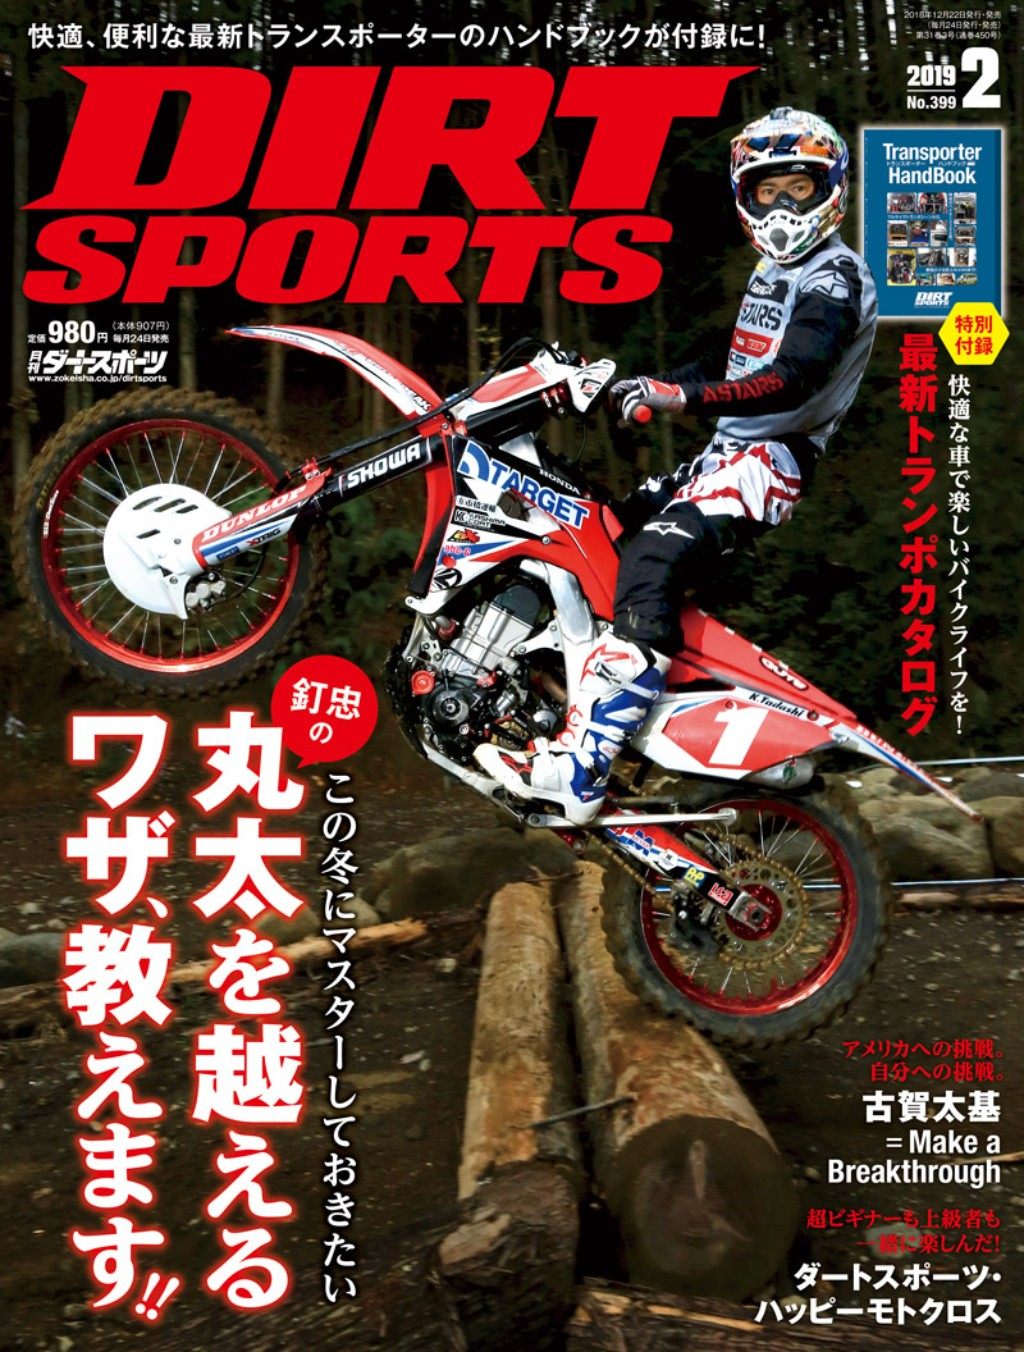 Monthly Magazine Dirt Sports February 2019 Issue